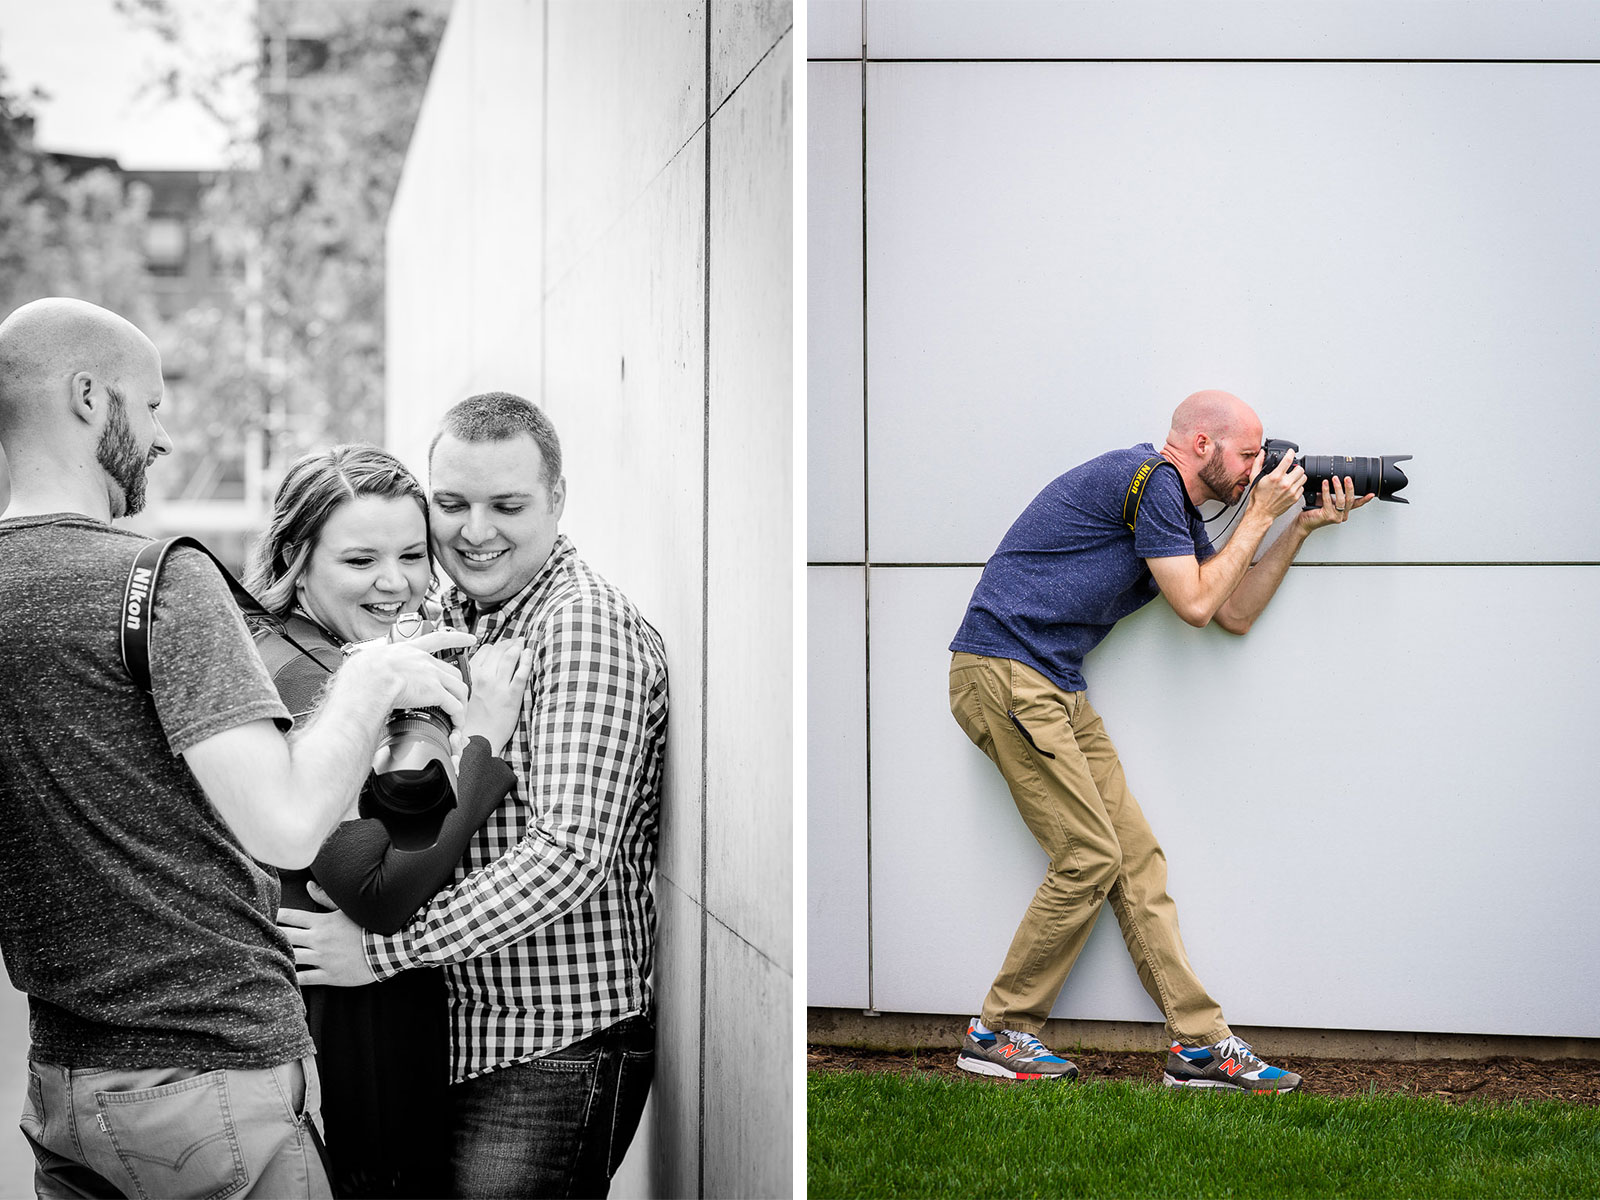 Eric_and_Christy_Photography_Blog_Stacey_Geoff_Engagement-25-26